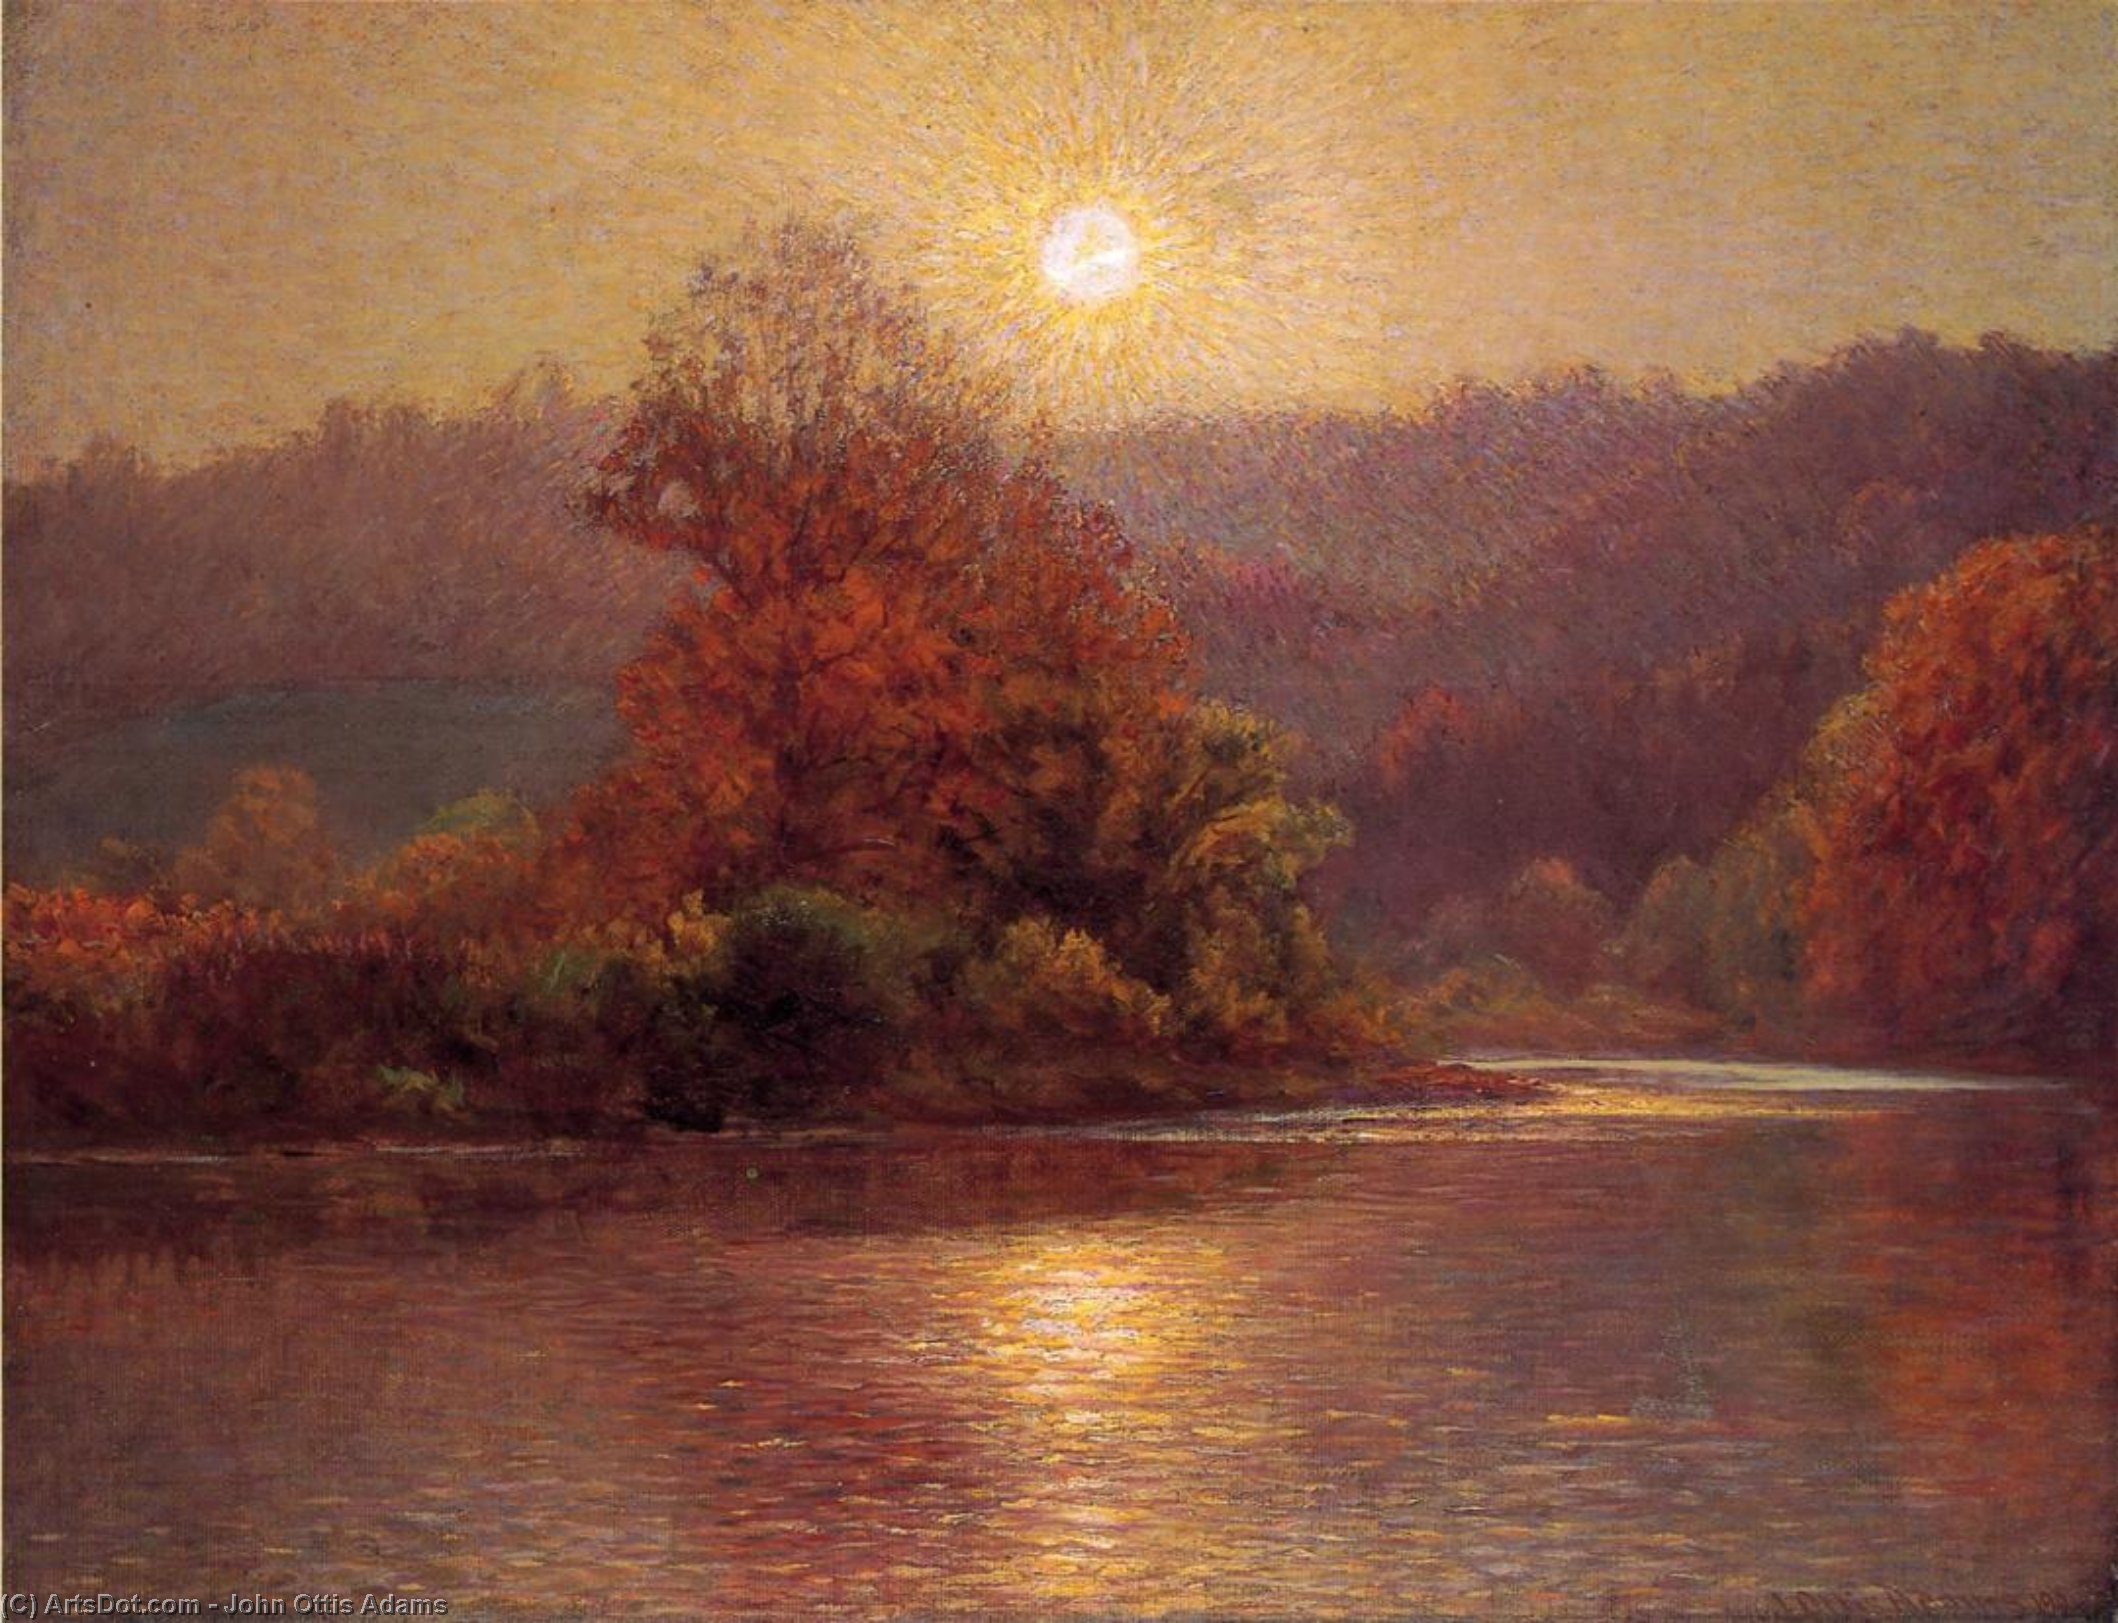 Wikioo.org - The Encyclopedia of Fine Arts - Painting, Artwork by John Ottis Adams - The Closing of an Autumn Day